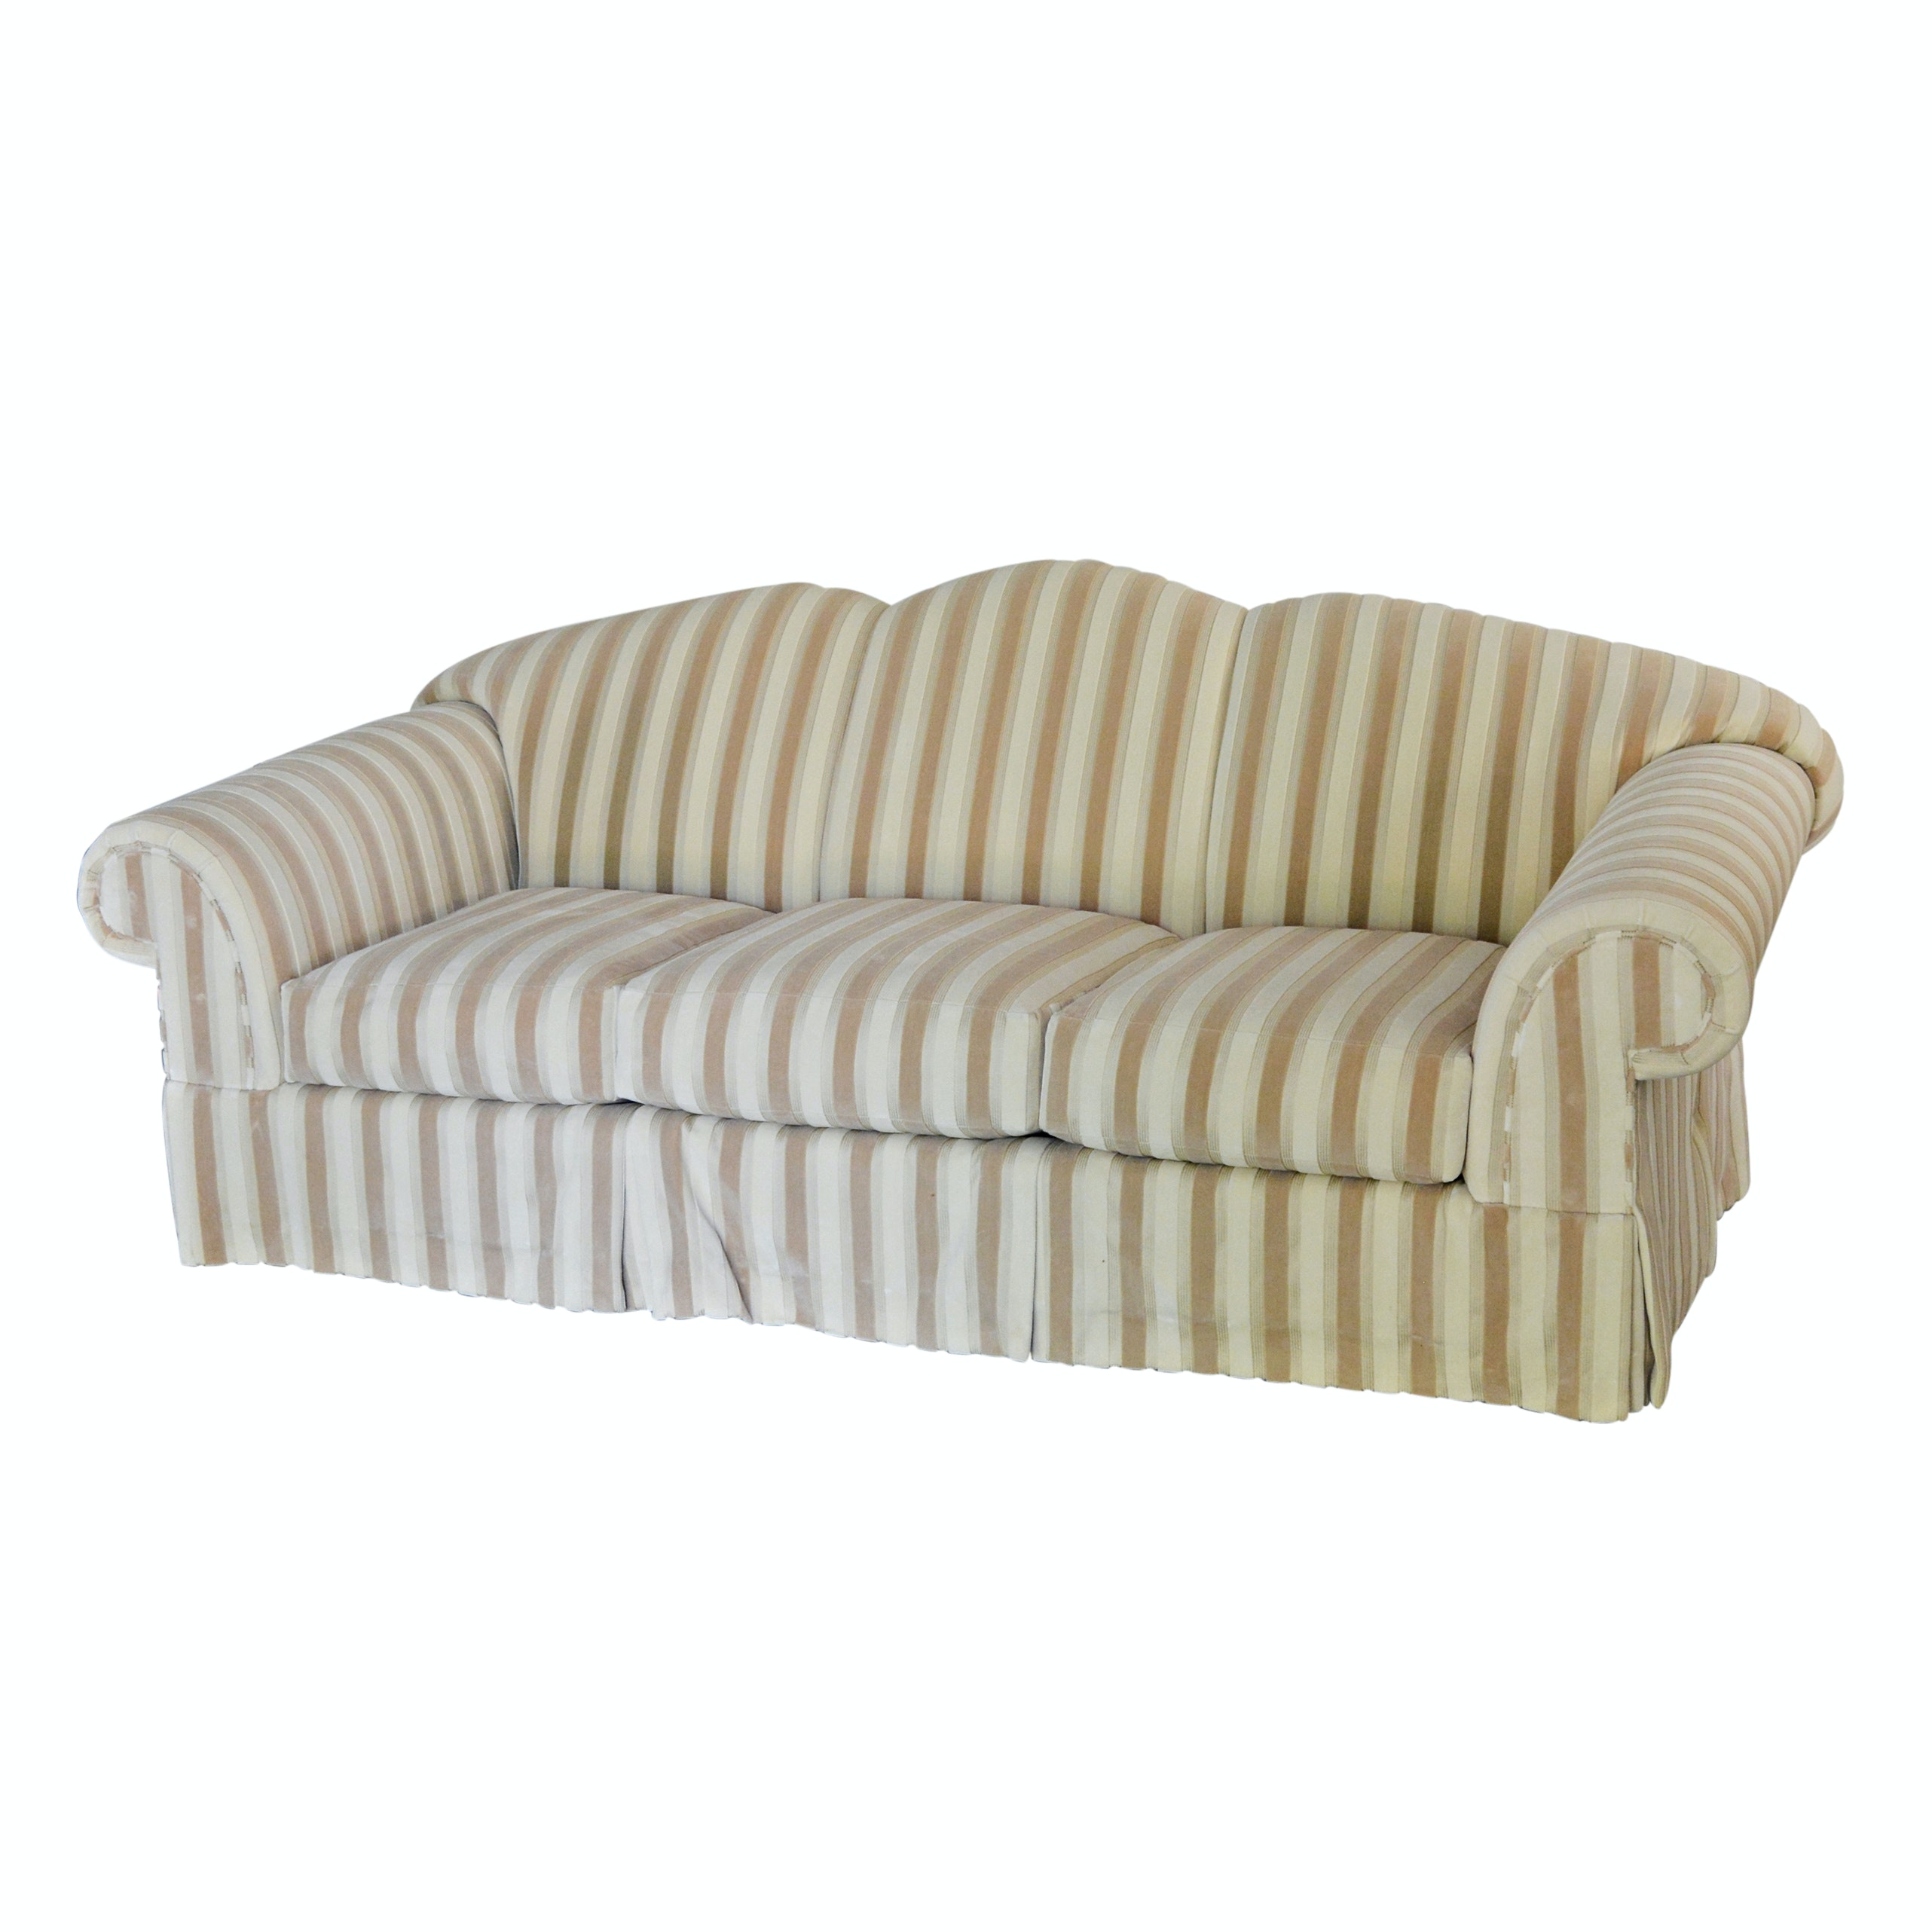 Cream and Taupe Striped Sofa by Jeffco